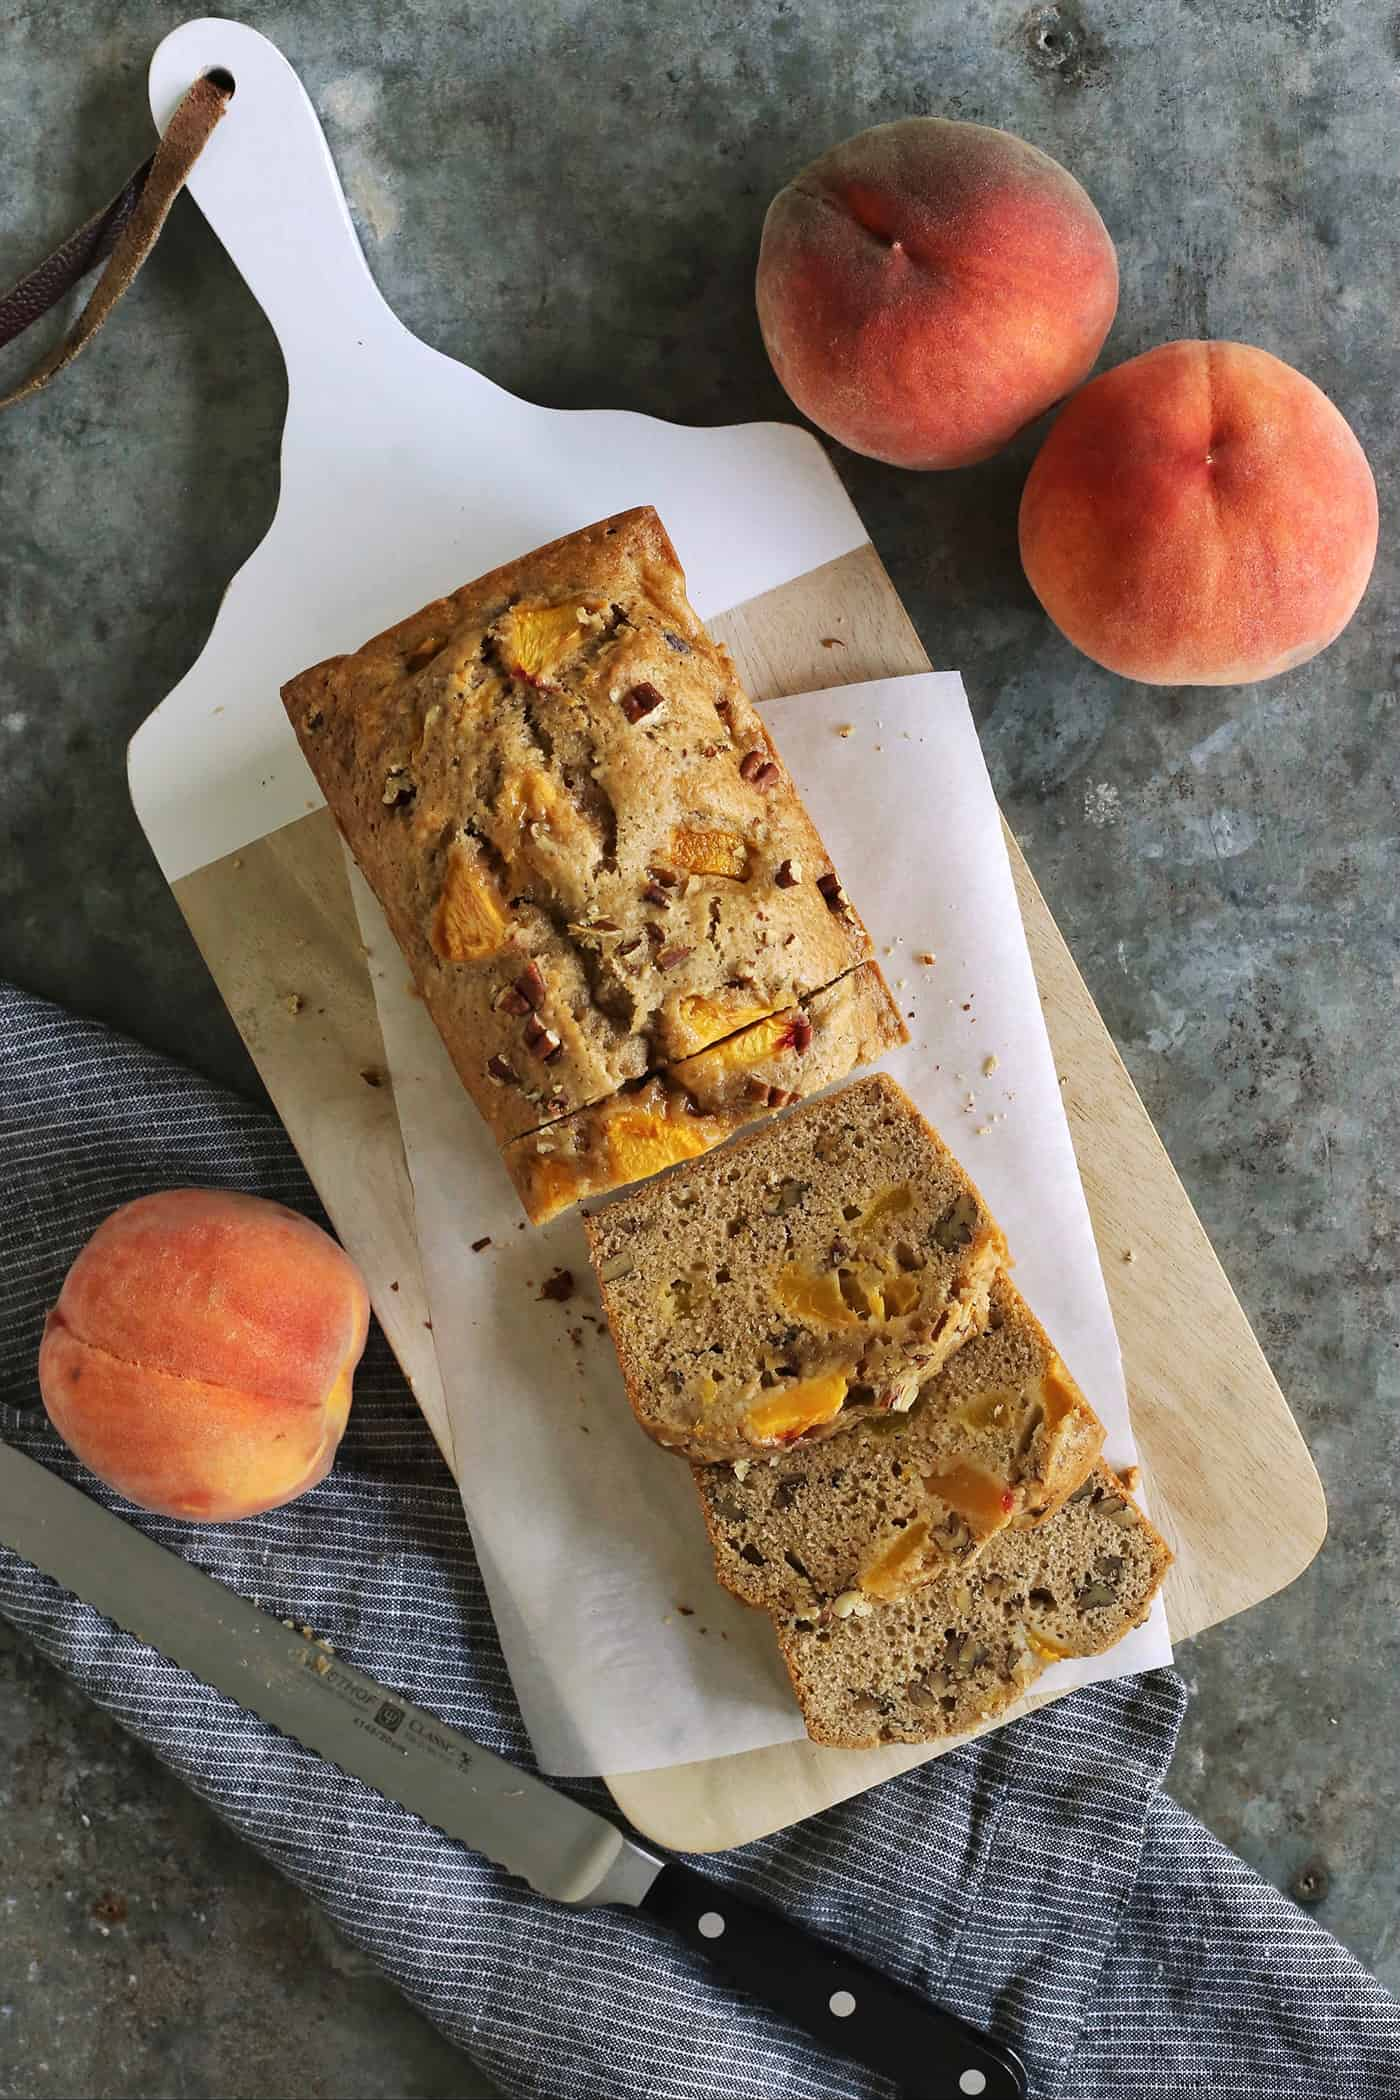 a cutting board with a loaf of peach bread that is partially sliced